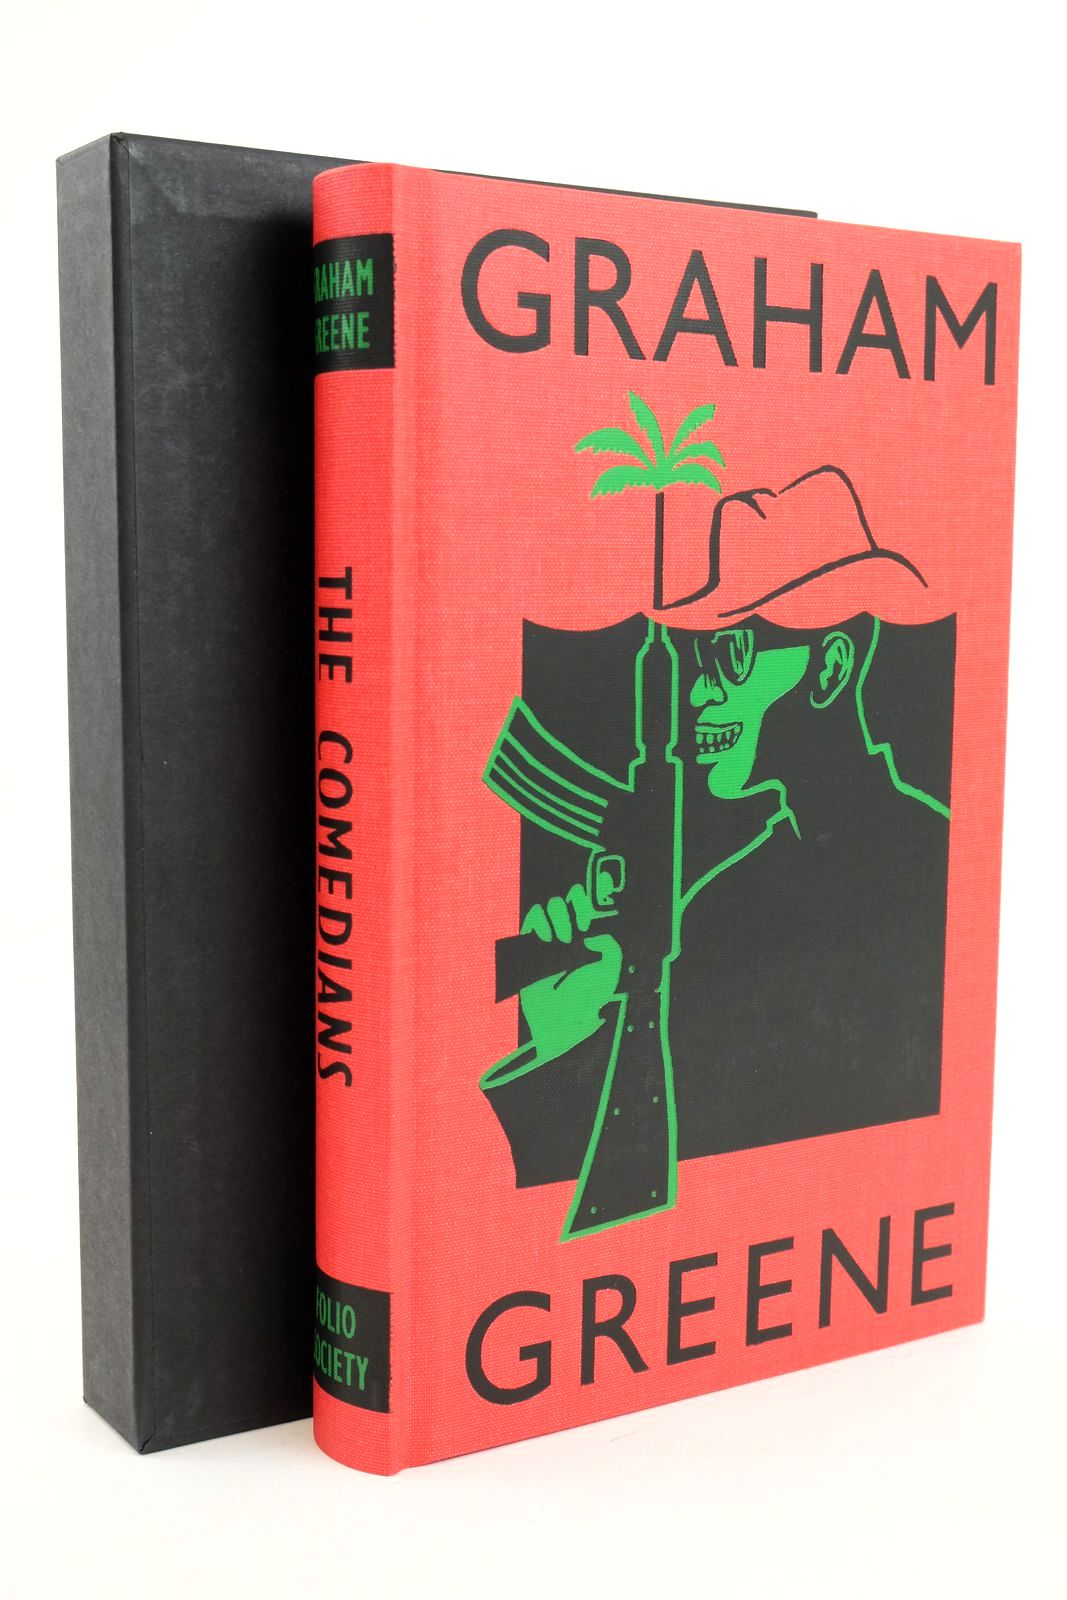 Photo of THE COMEDIANS written by Greene, Graham illustrated by Ogilvie, Sara published by Folio Society (STOCK CODE: 1318860)  for sale by Stella & Rose's Books